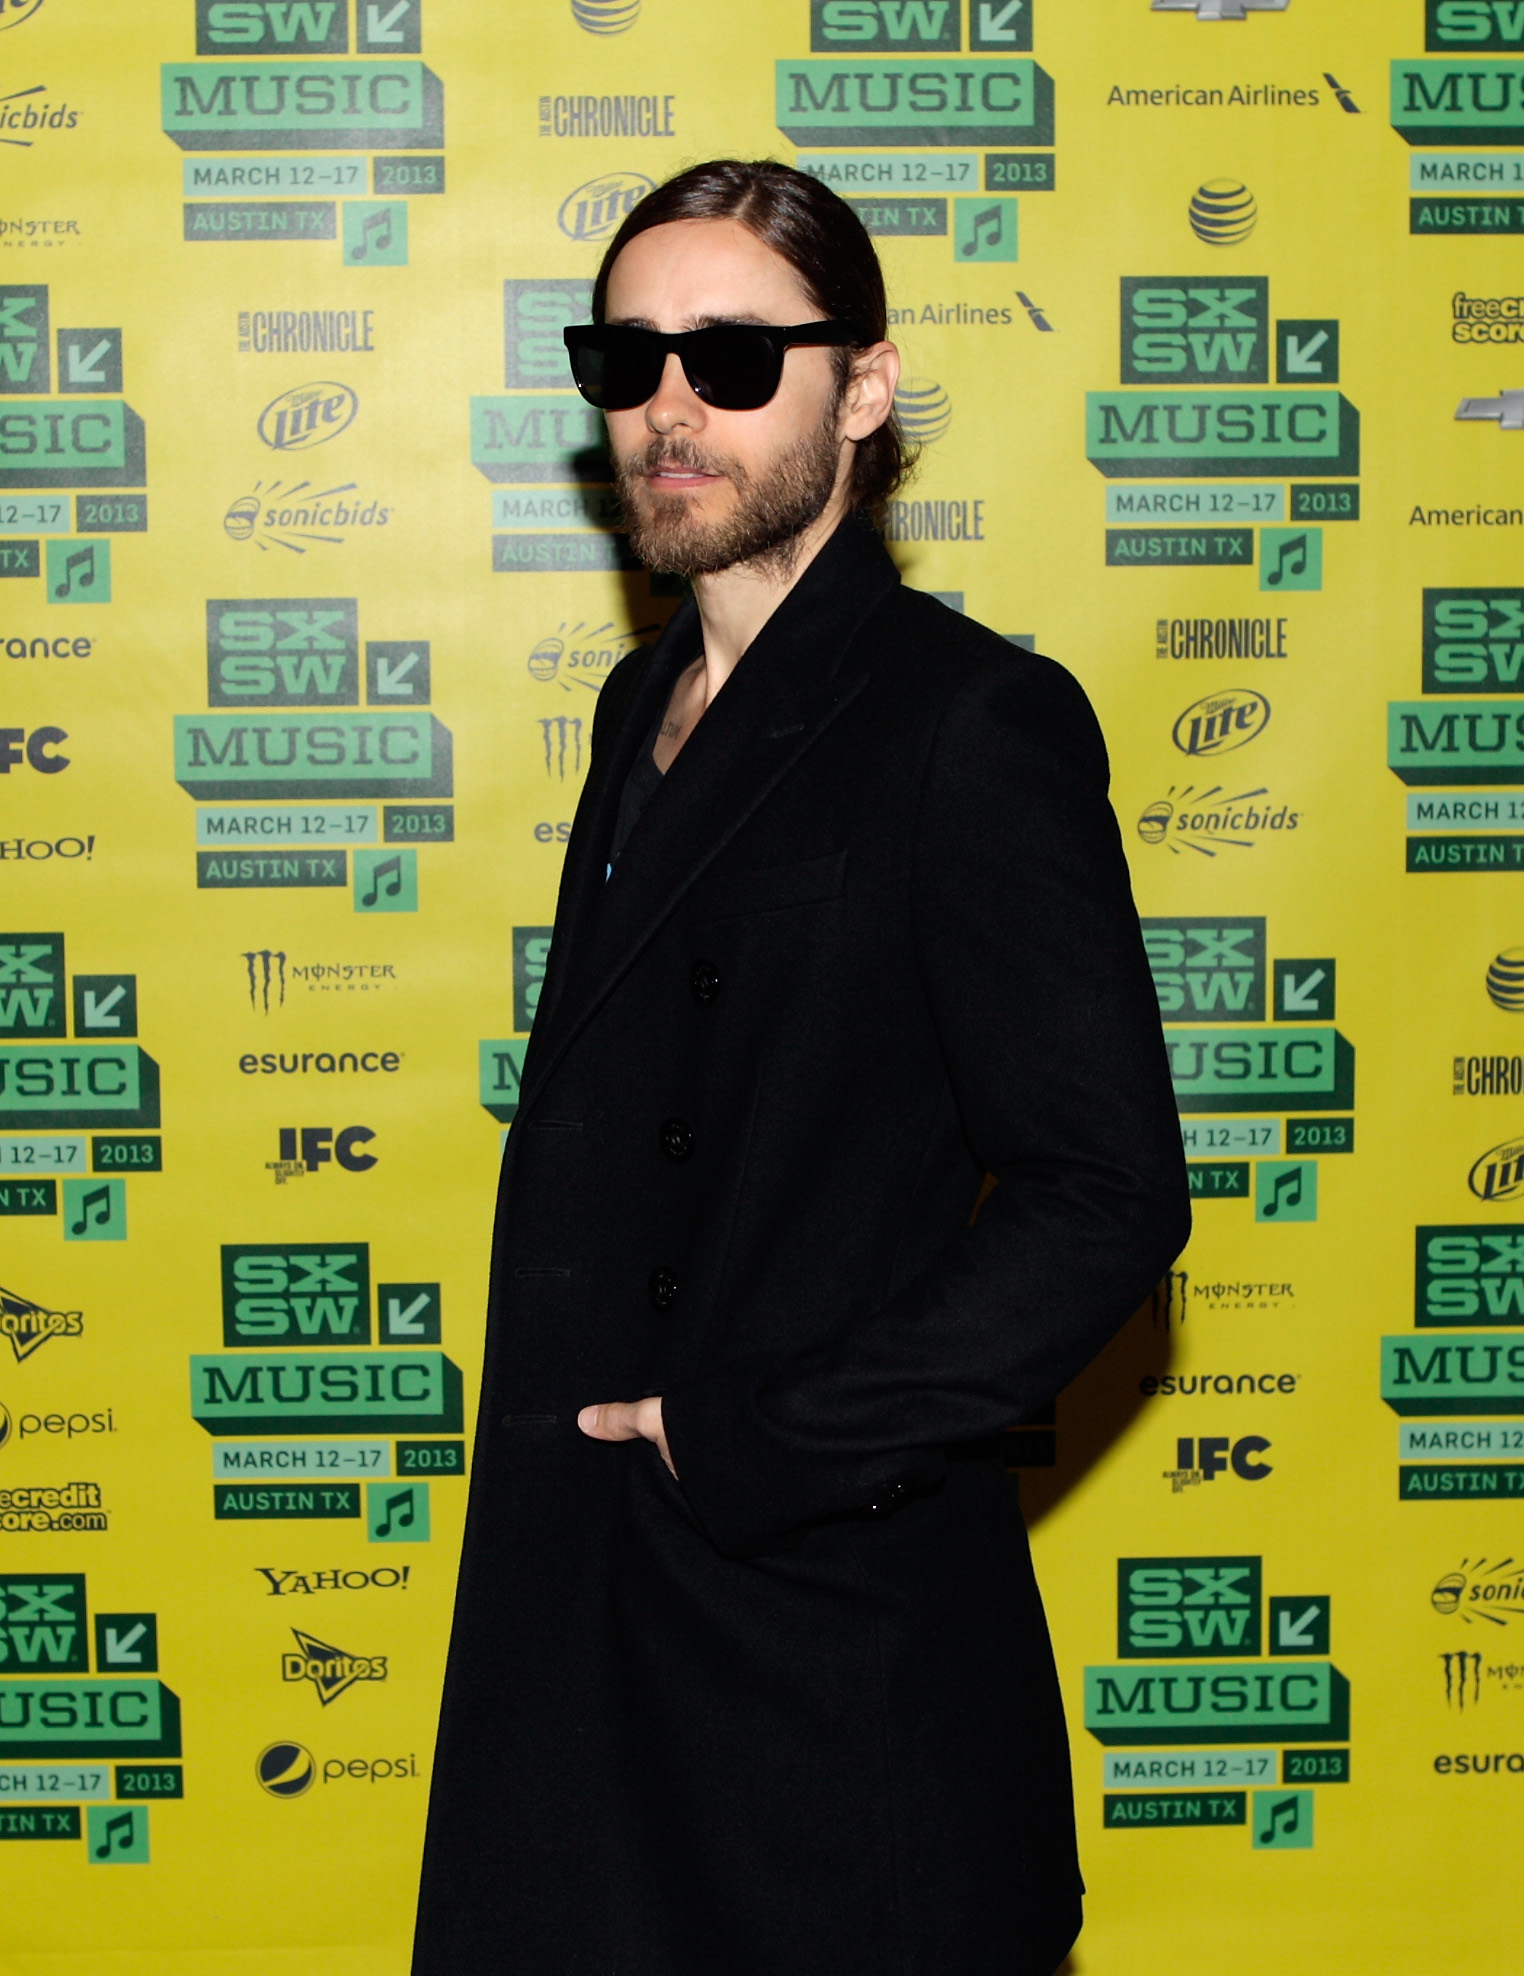 Jared Leto made an appearance at the festival.